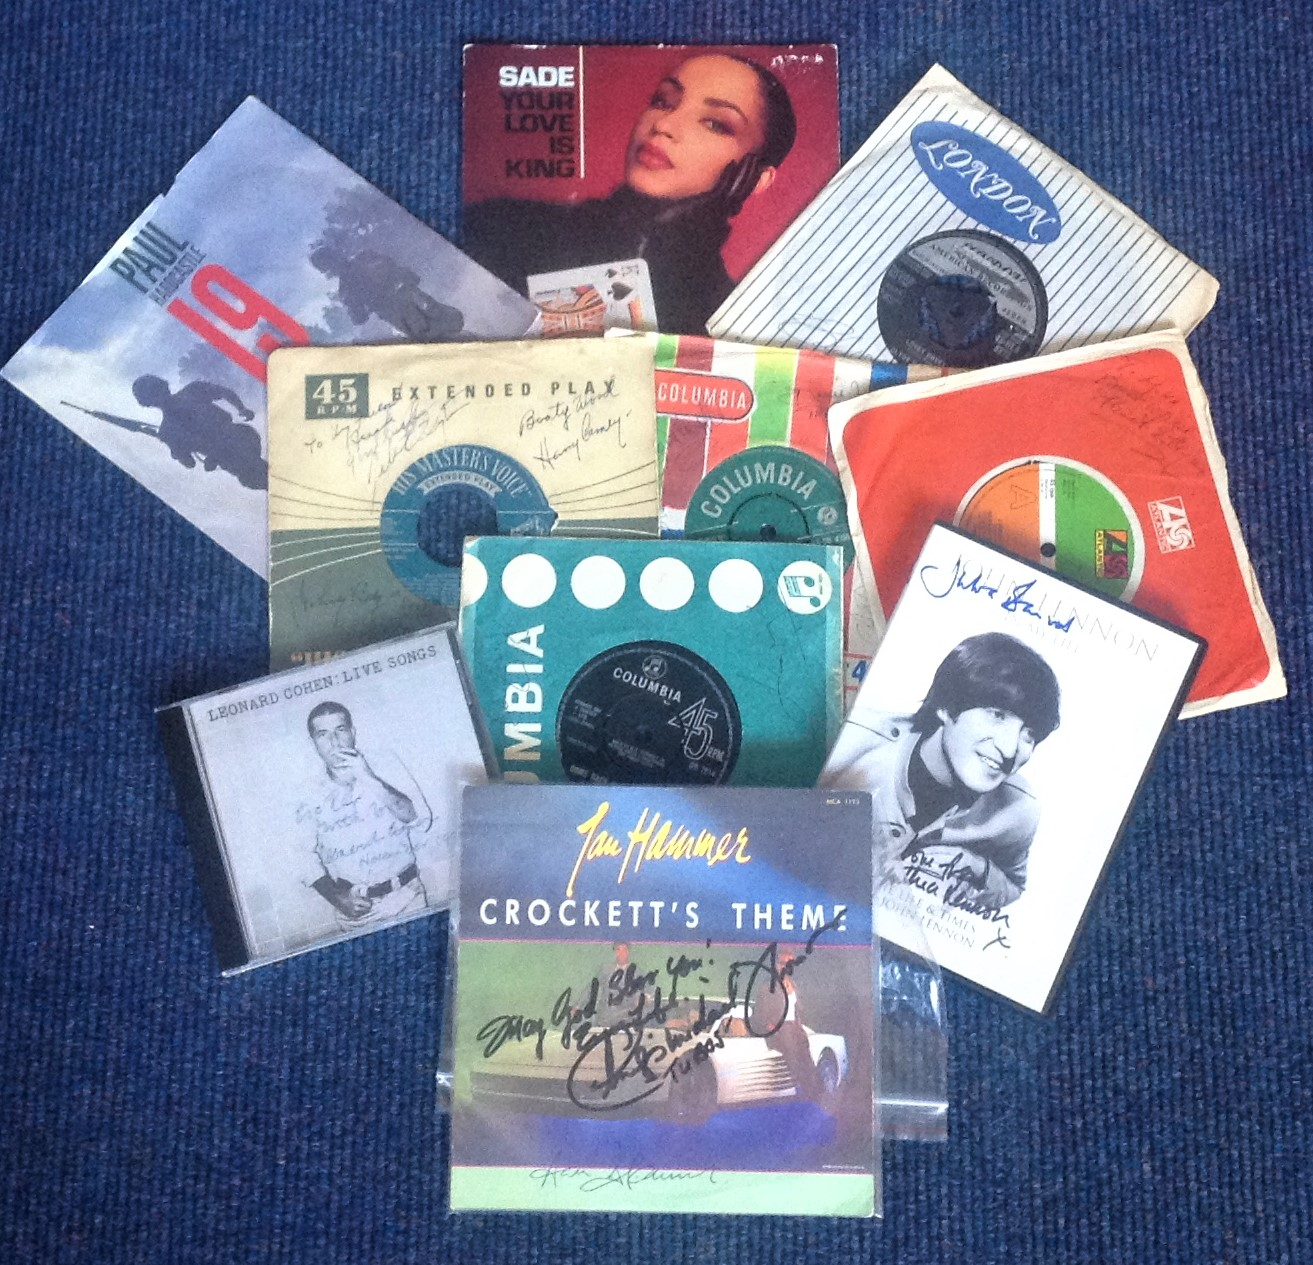 Lot 14 - Music signed collection. Includes 8 signed 45rpm record sleeves with records. 1 signed cd insert